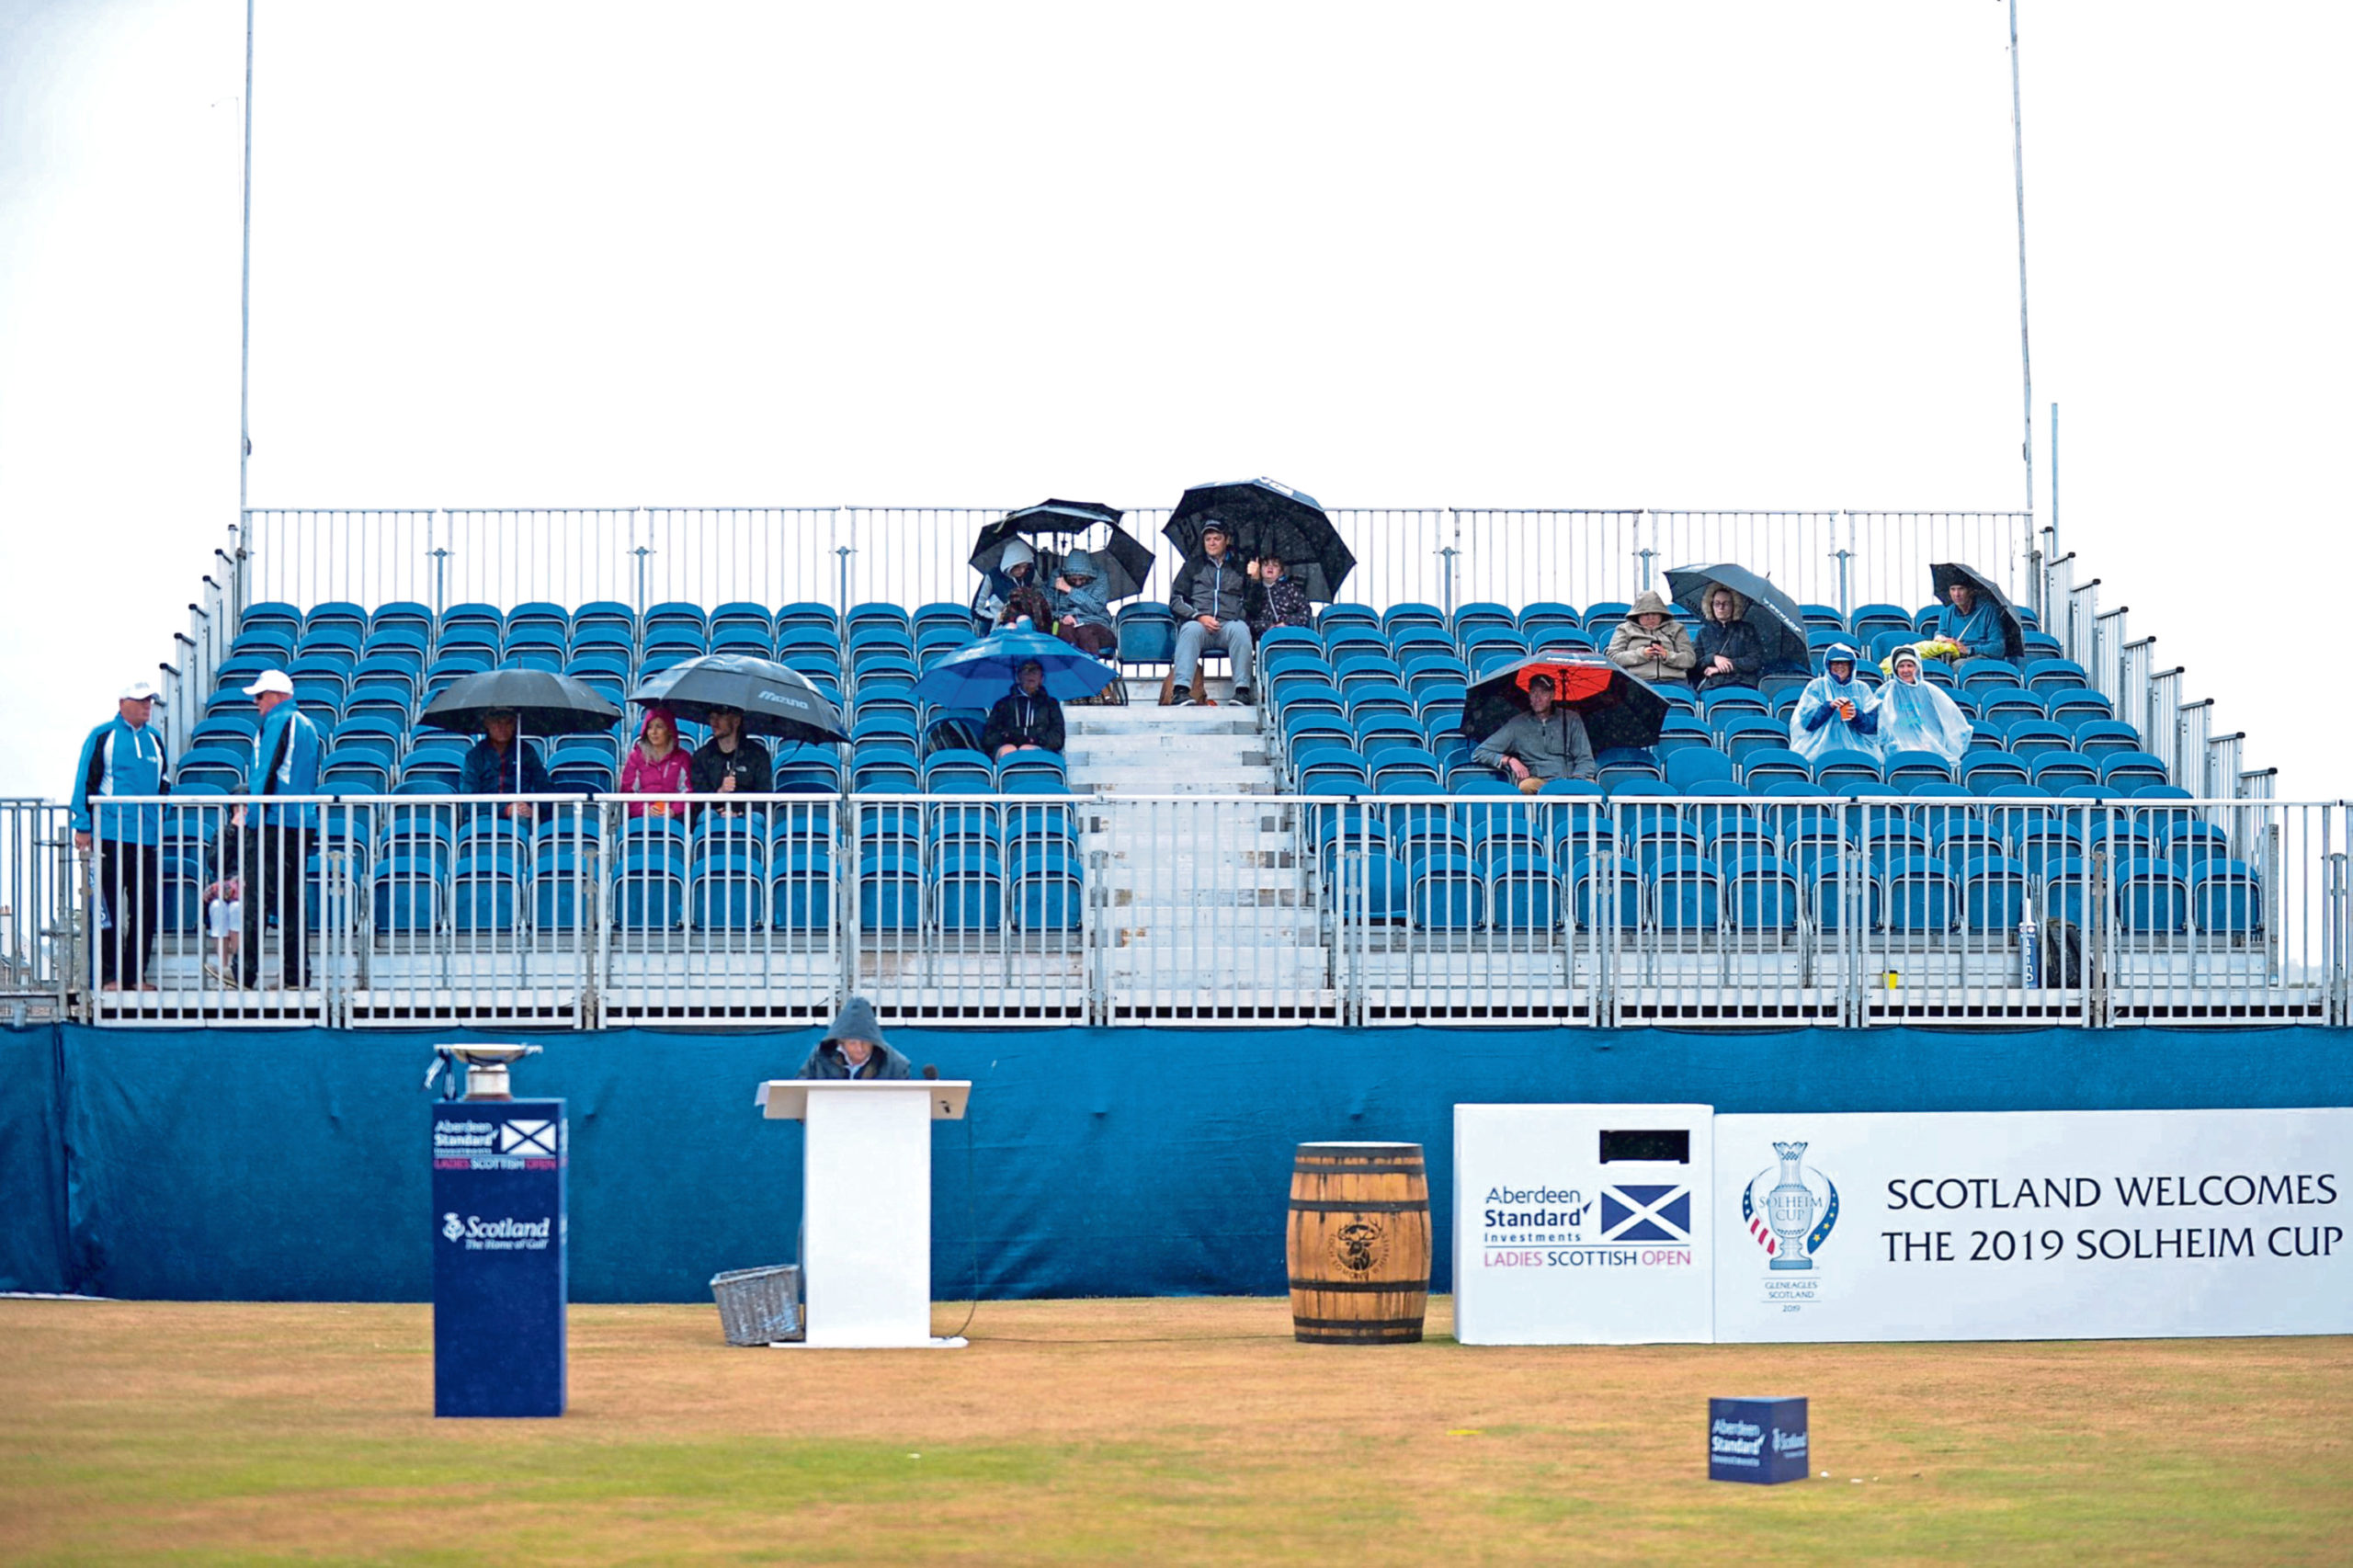 The ladies Scottish Open is held a month after the men's version at the same venue, but suffers at the box office.